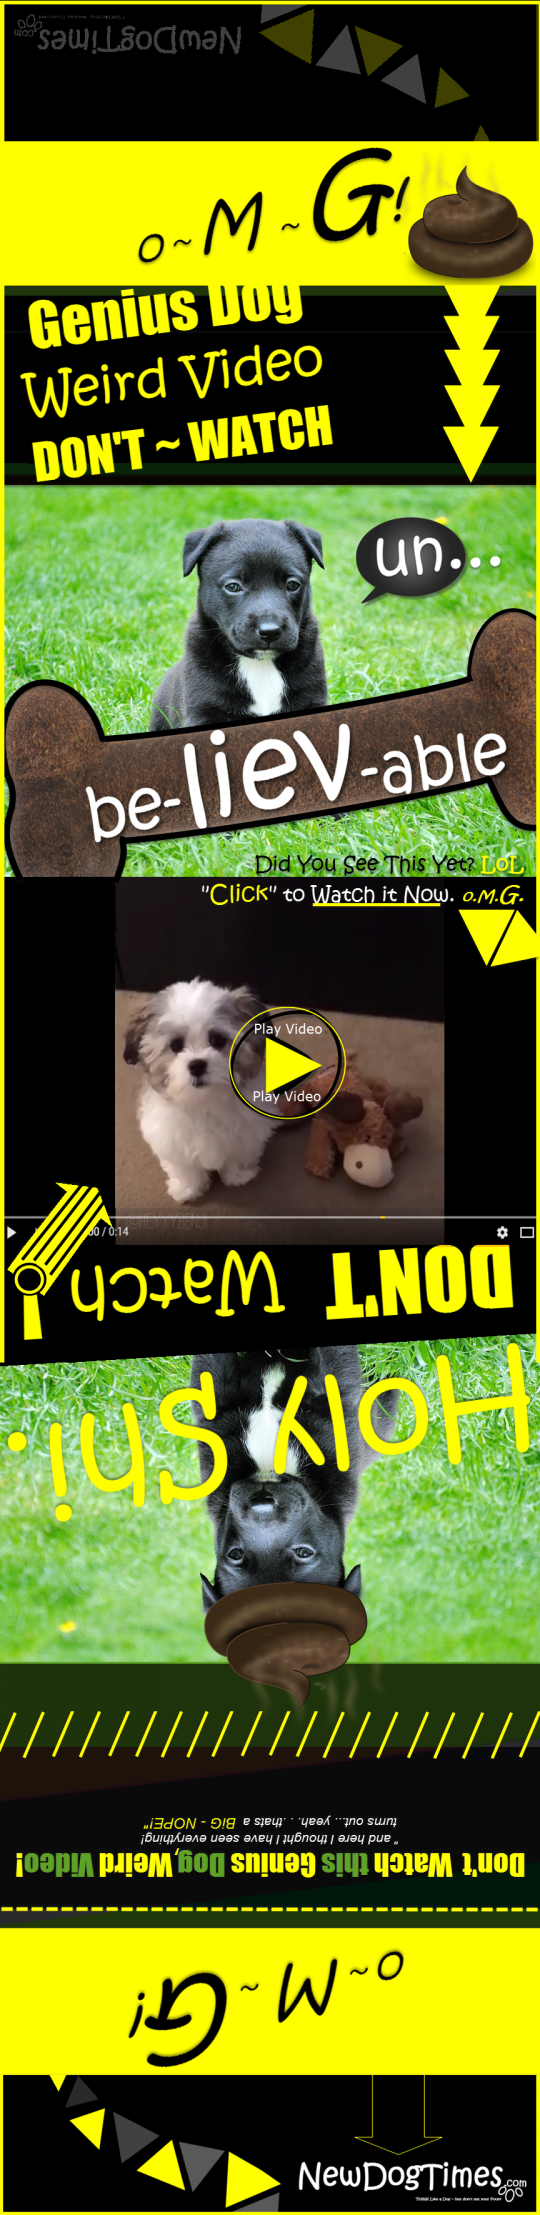 Funny Dog Video Infographic